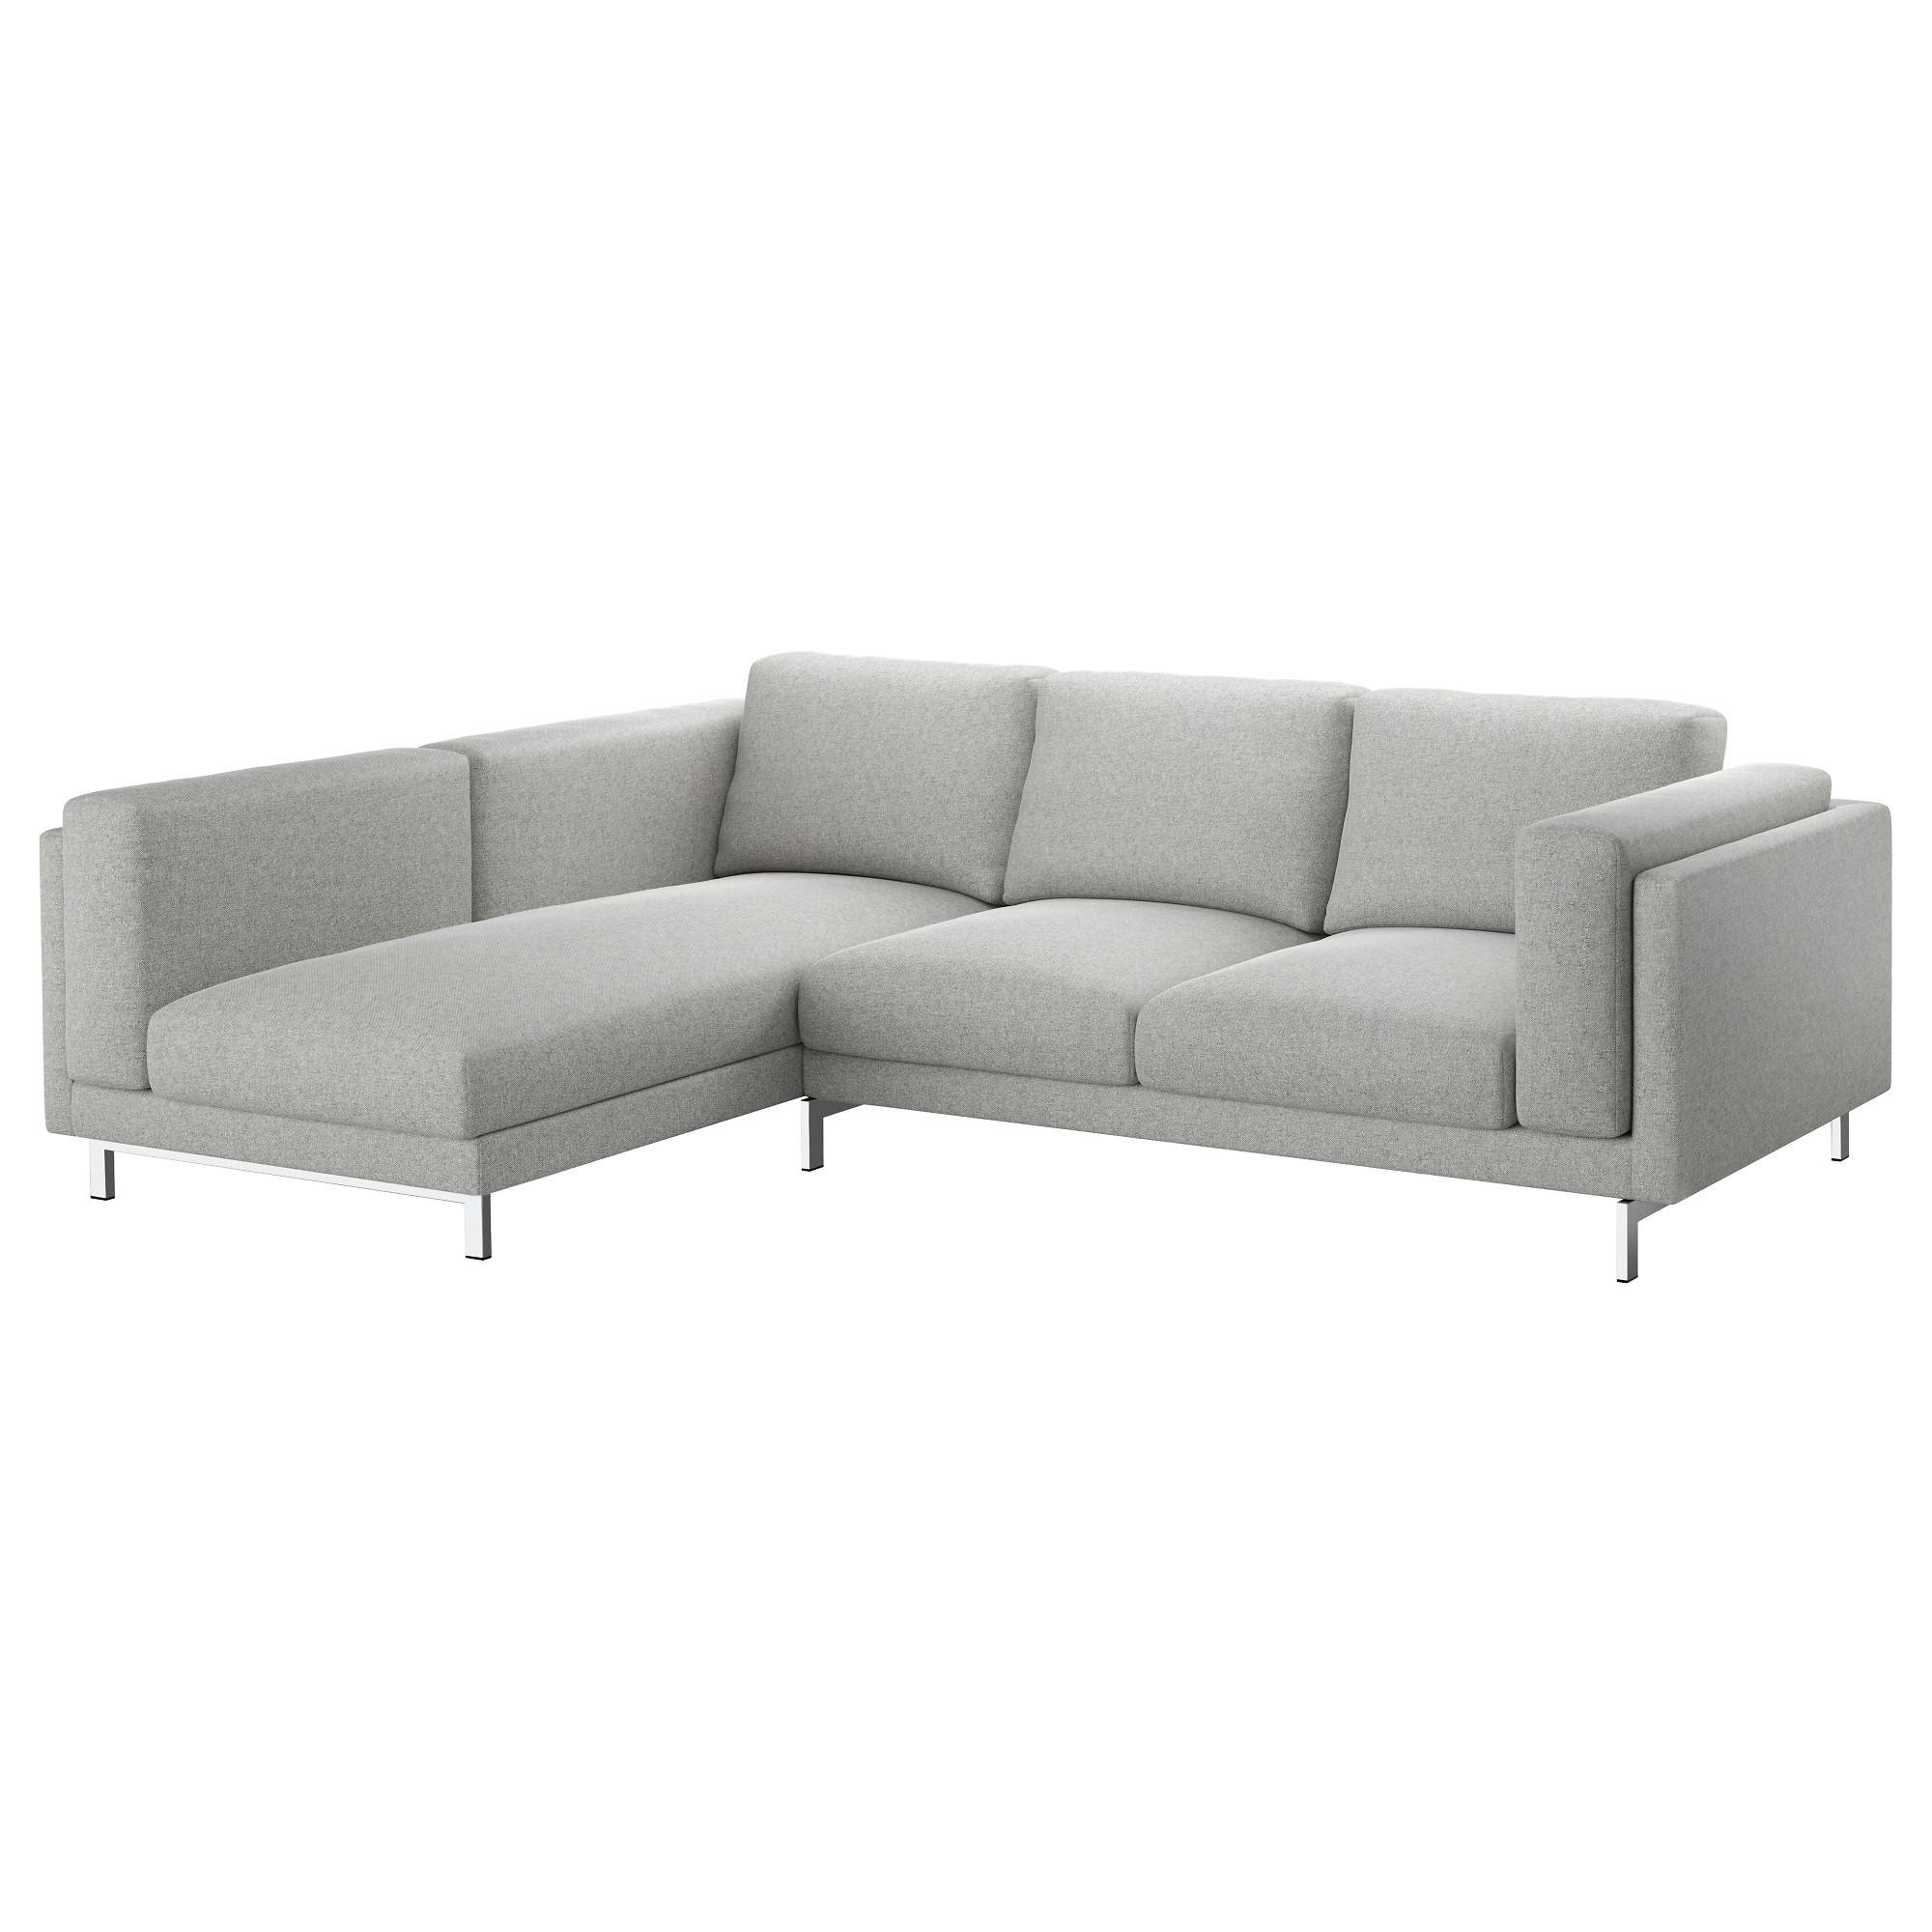 Fabric Sofas - Modern & Contemporary - Ikea within 4 Seat Sofas (Image 15 of 30)